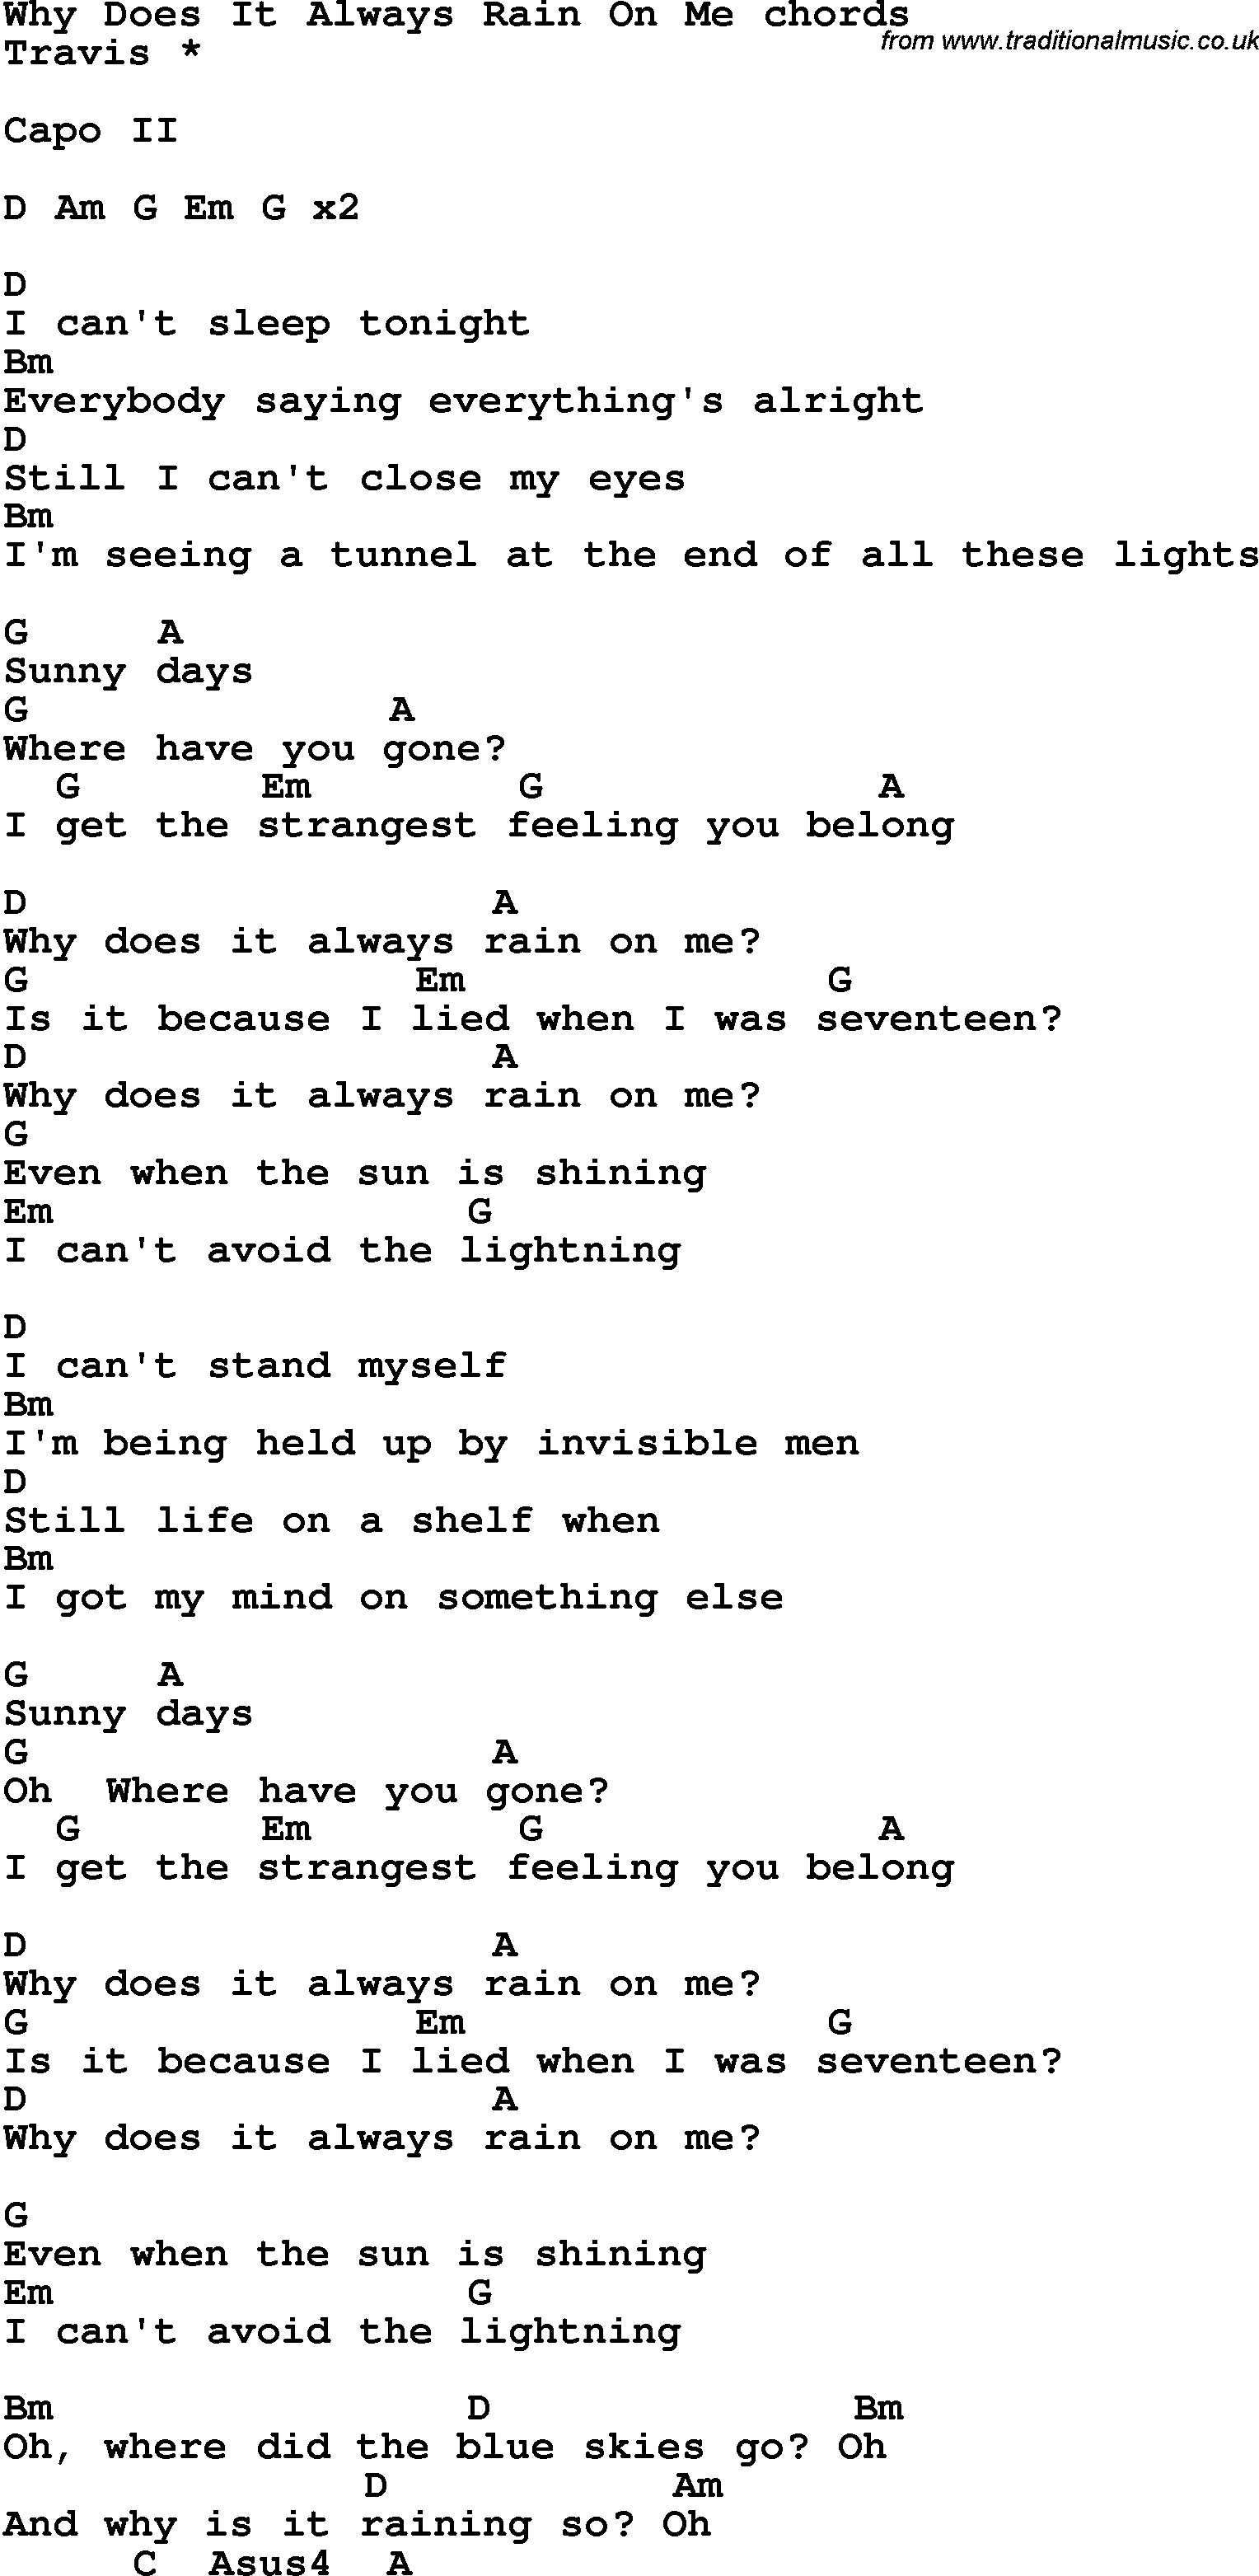 Song Lyrics With Guitar Chords For Why Does It Always Rain